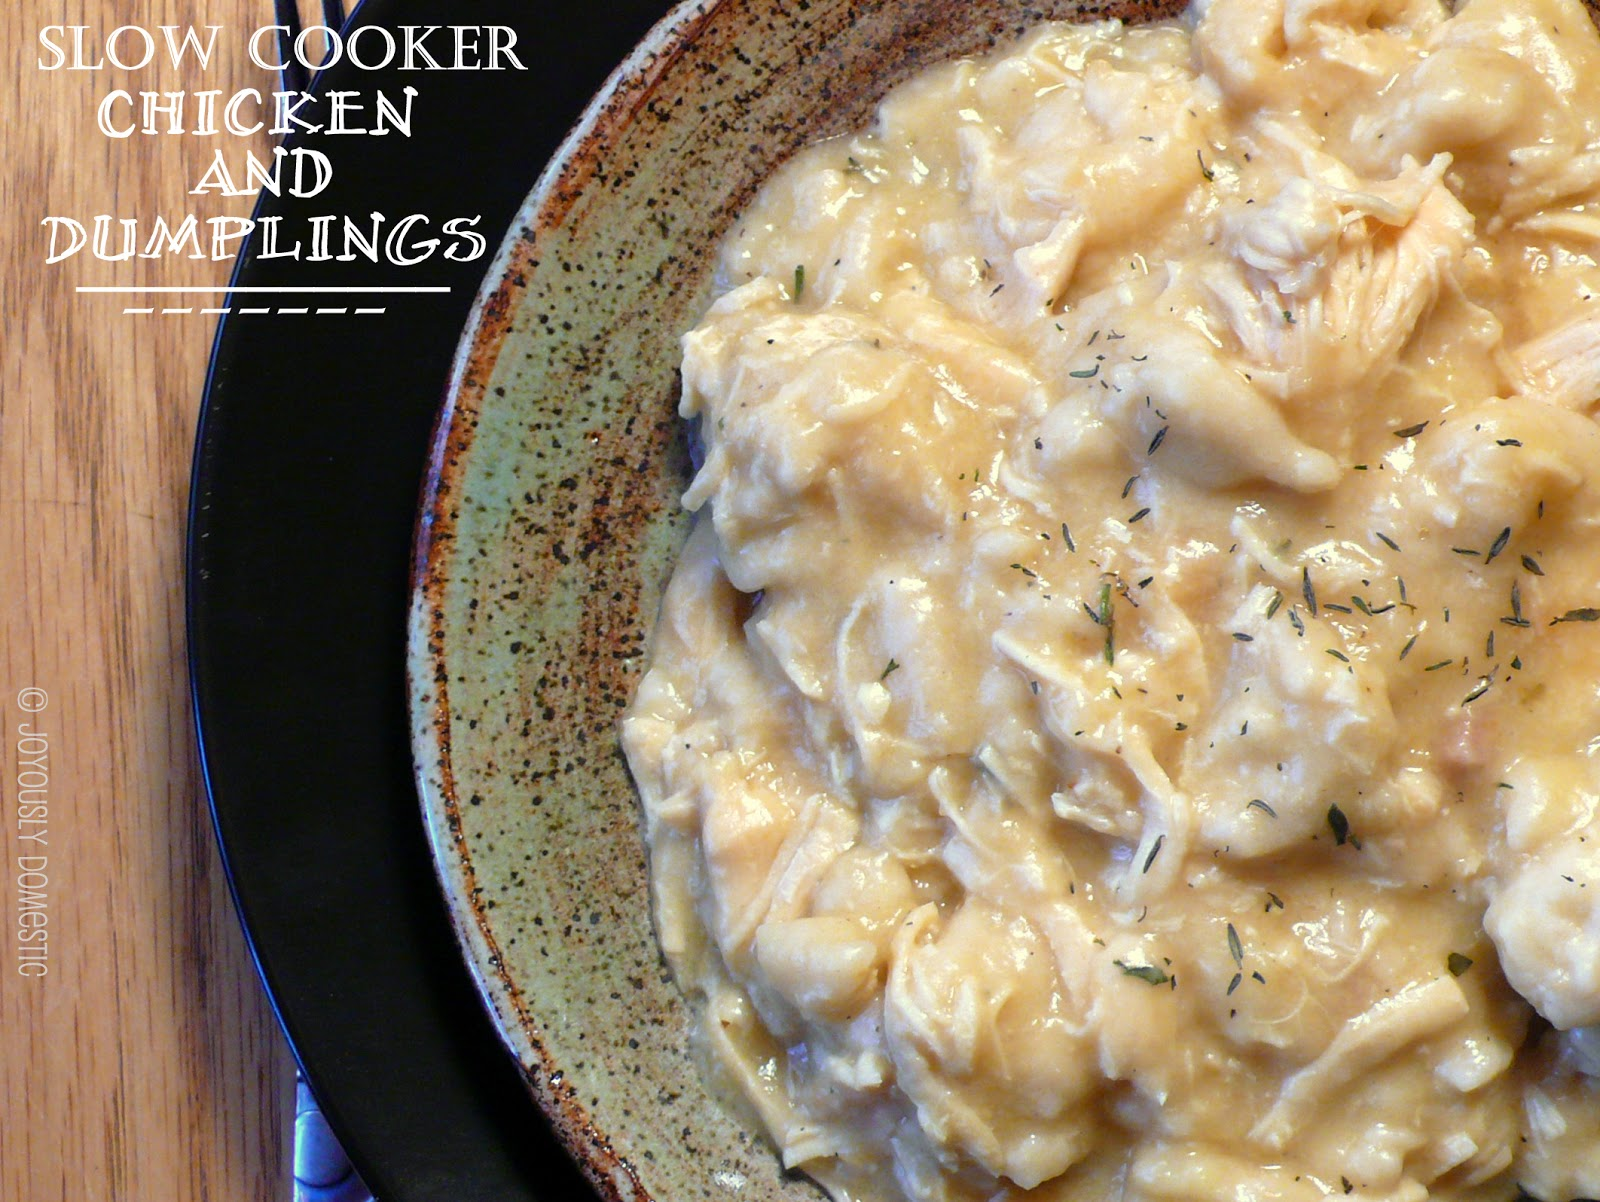 Joyously Domestic: Easy Peasy Slow Cooker Chicken and Dumplings